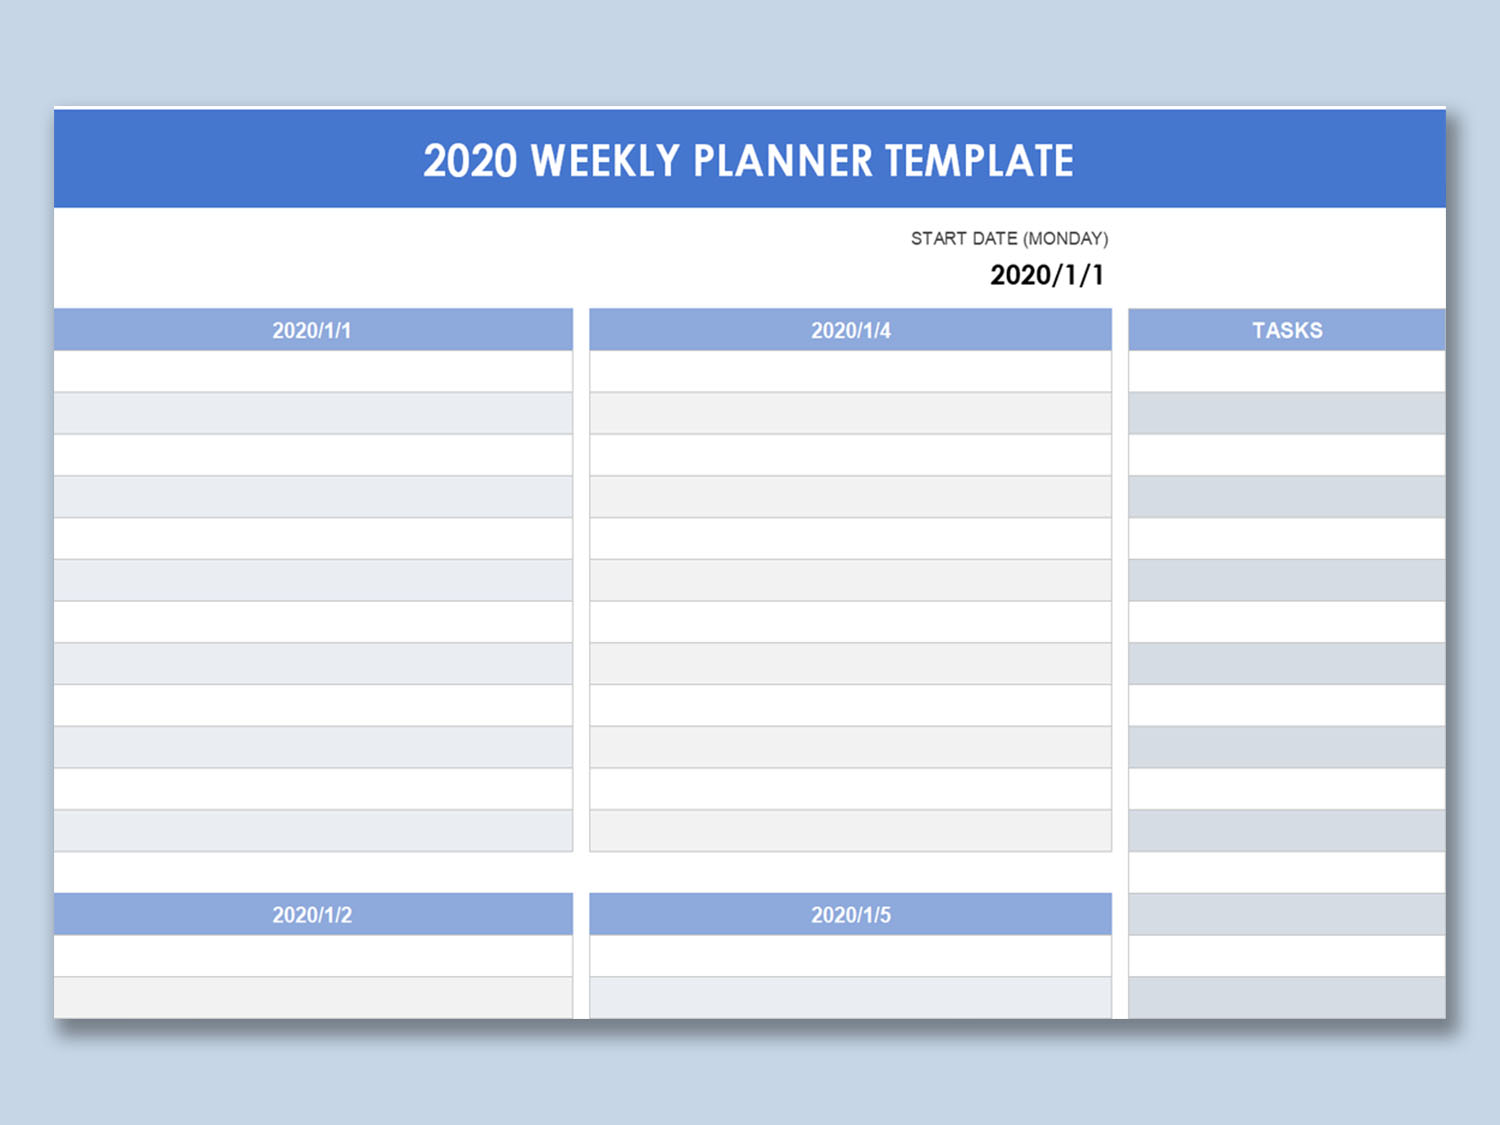 Weekly Task Planner Template from d4z1onkegyrs5.cloudfront.net